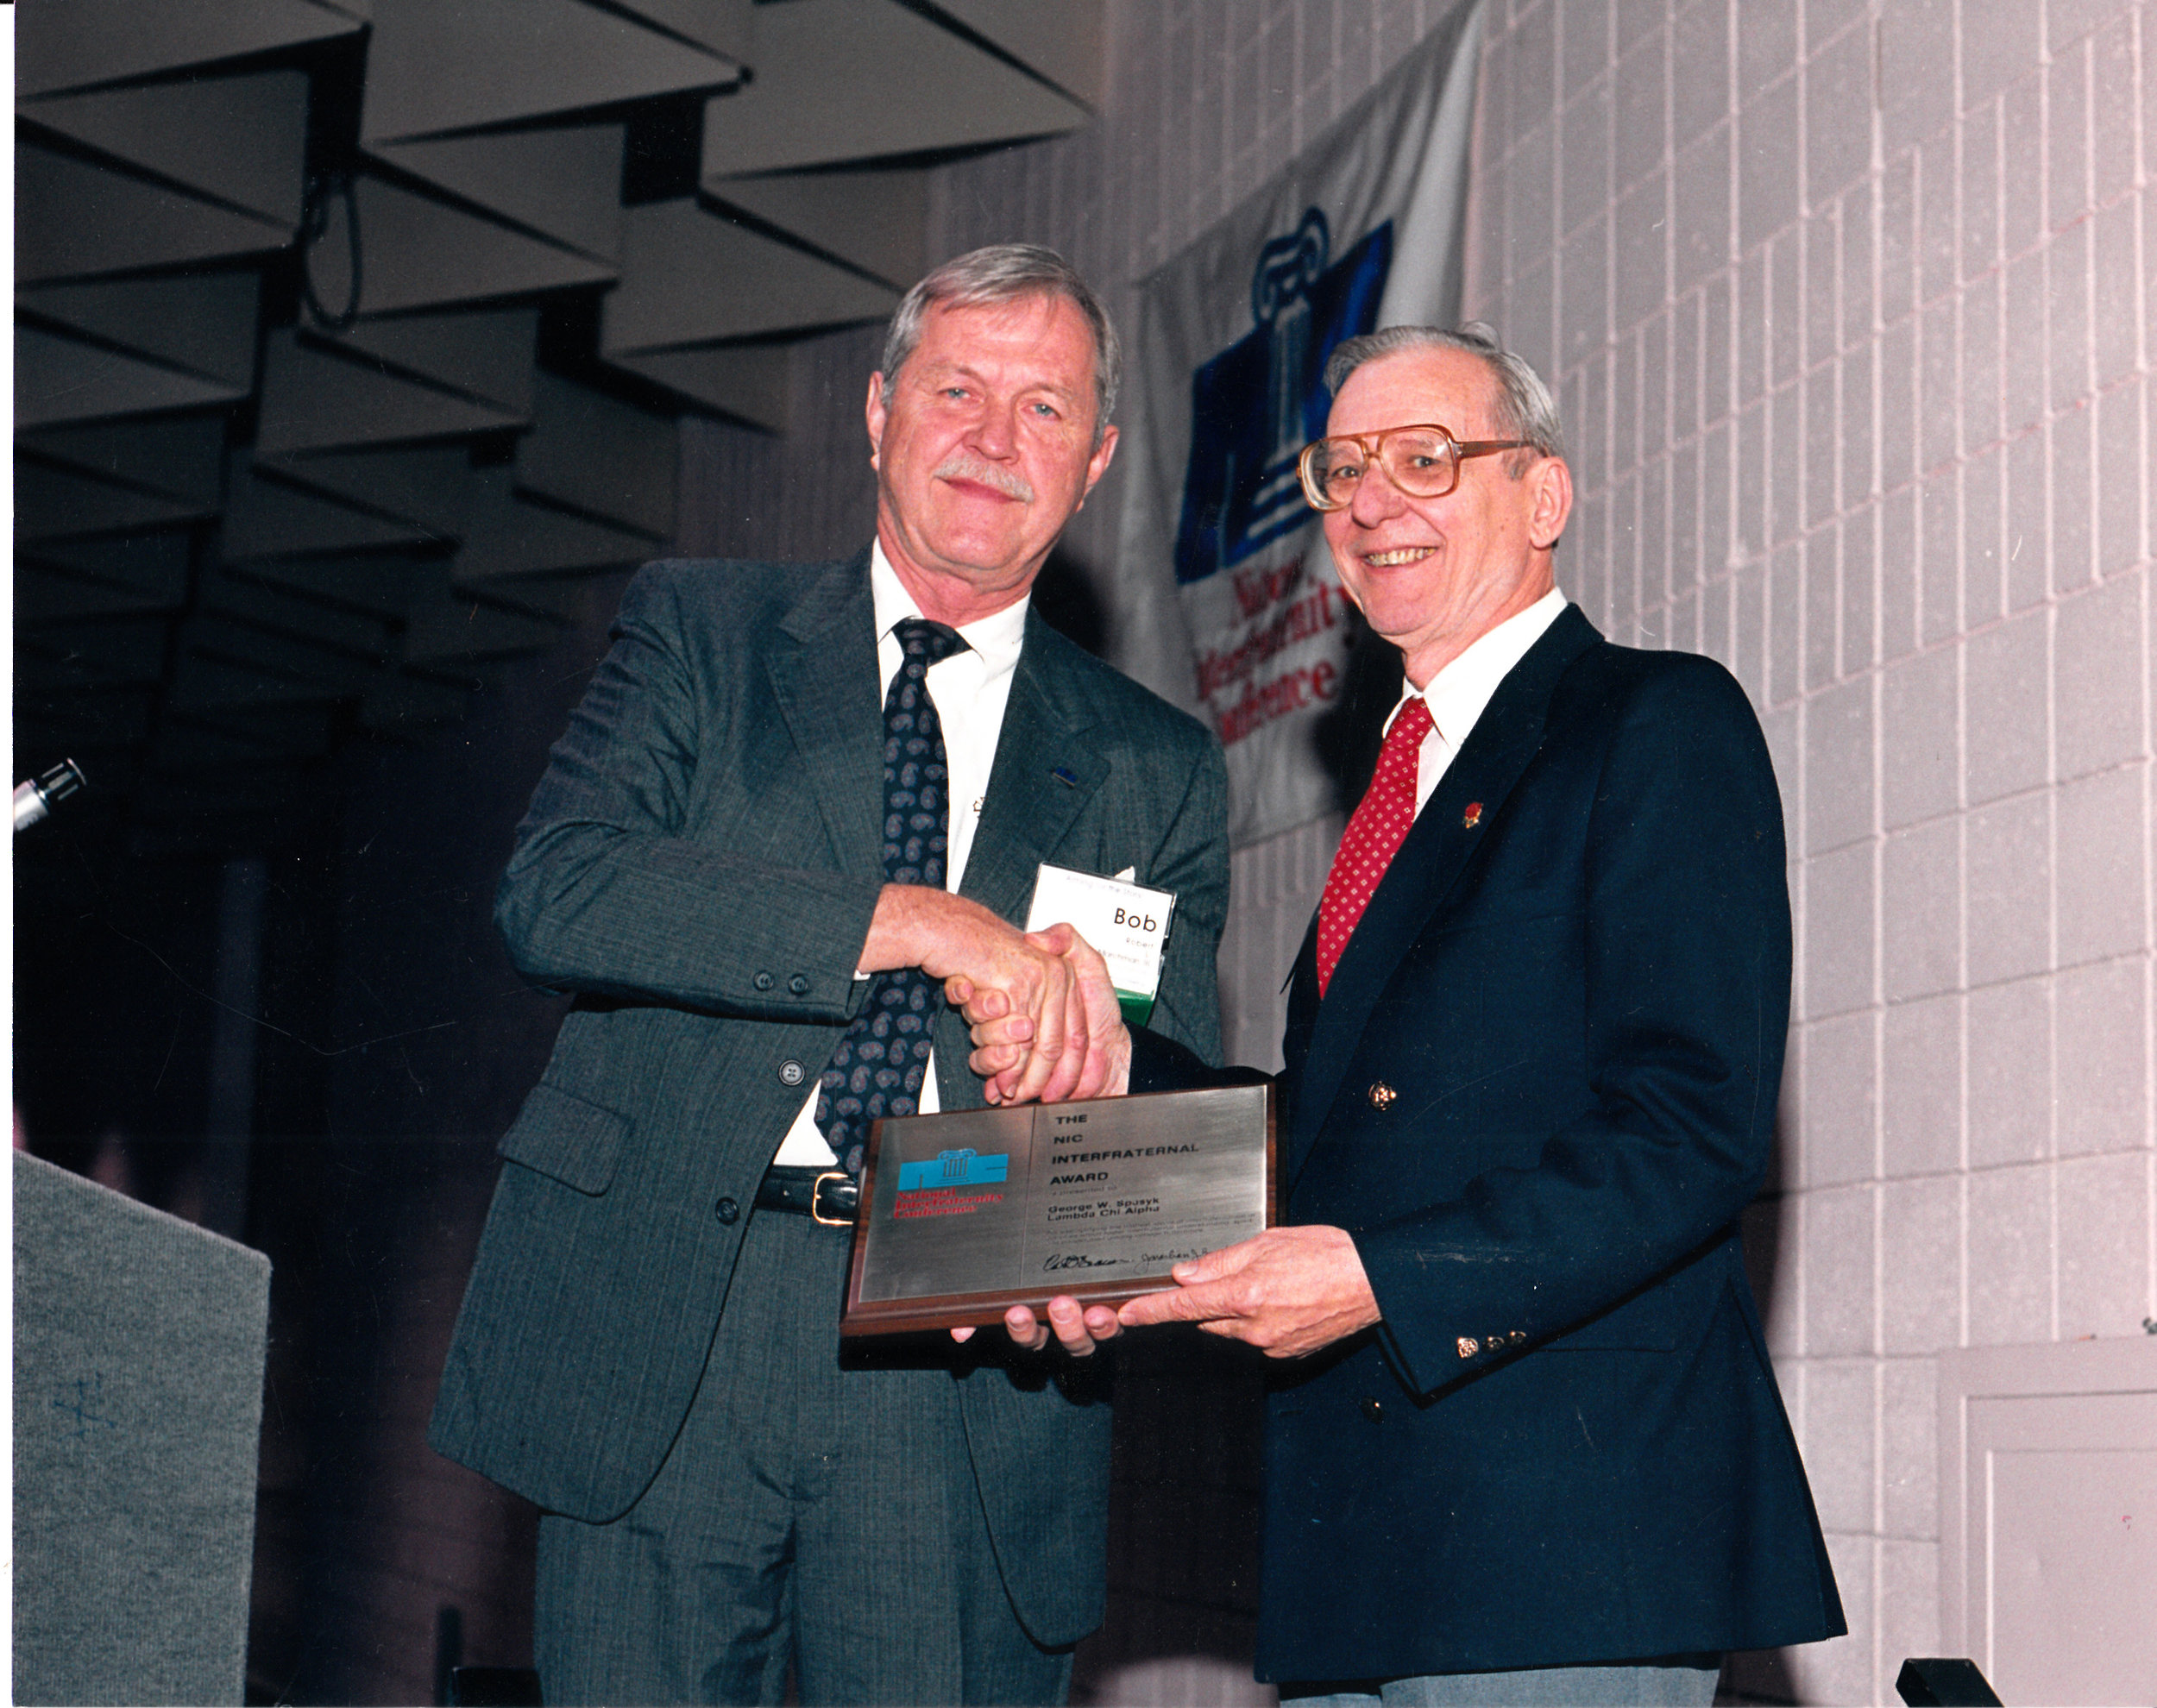 Receiving the NIC Interfraternal Award, 1989